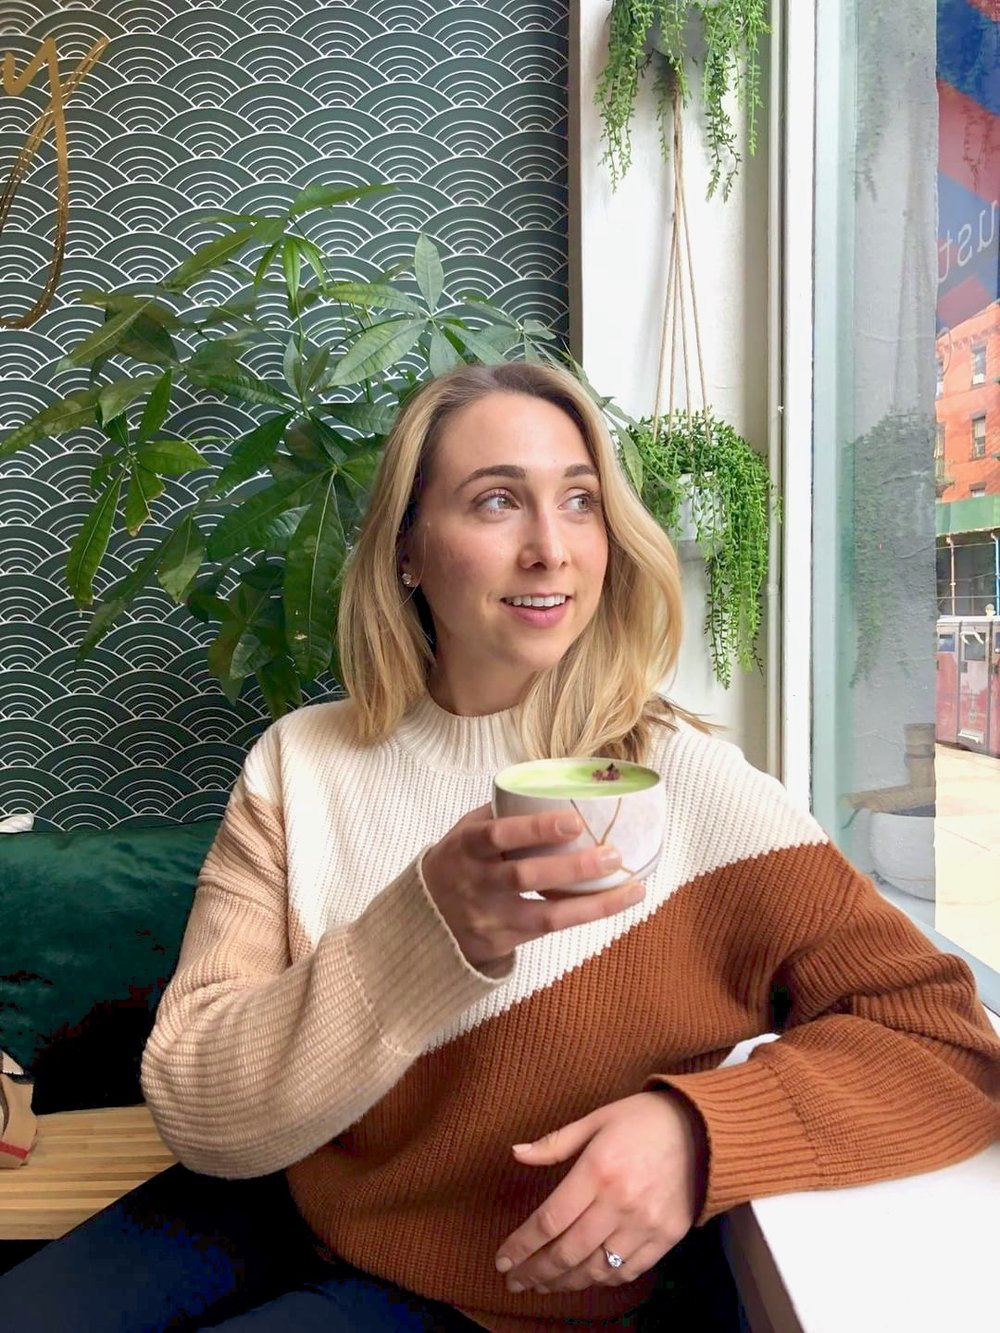 Girl drinking matcha by a window